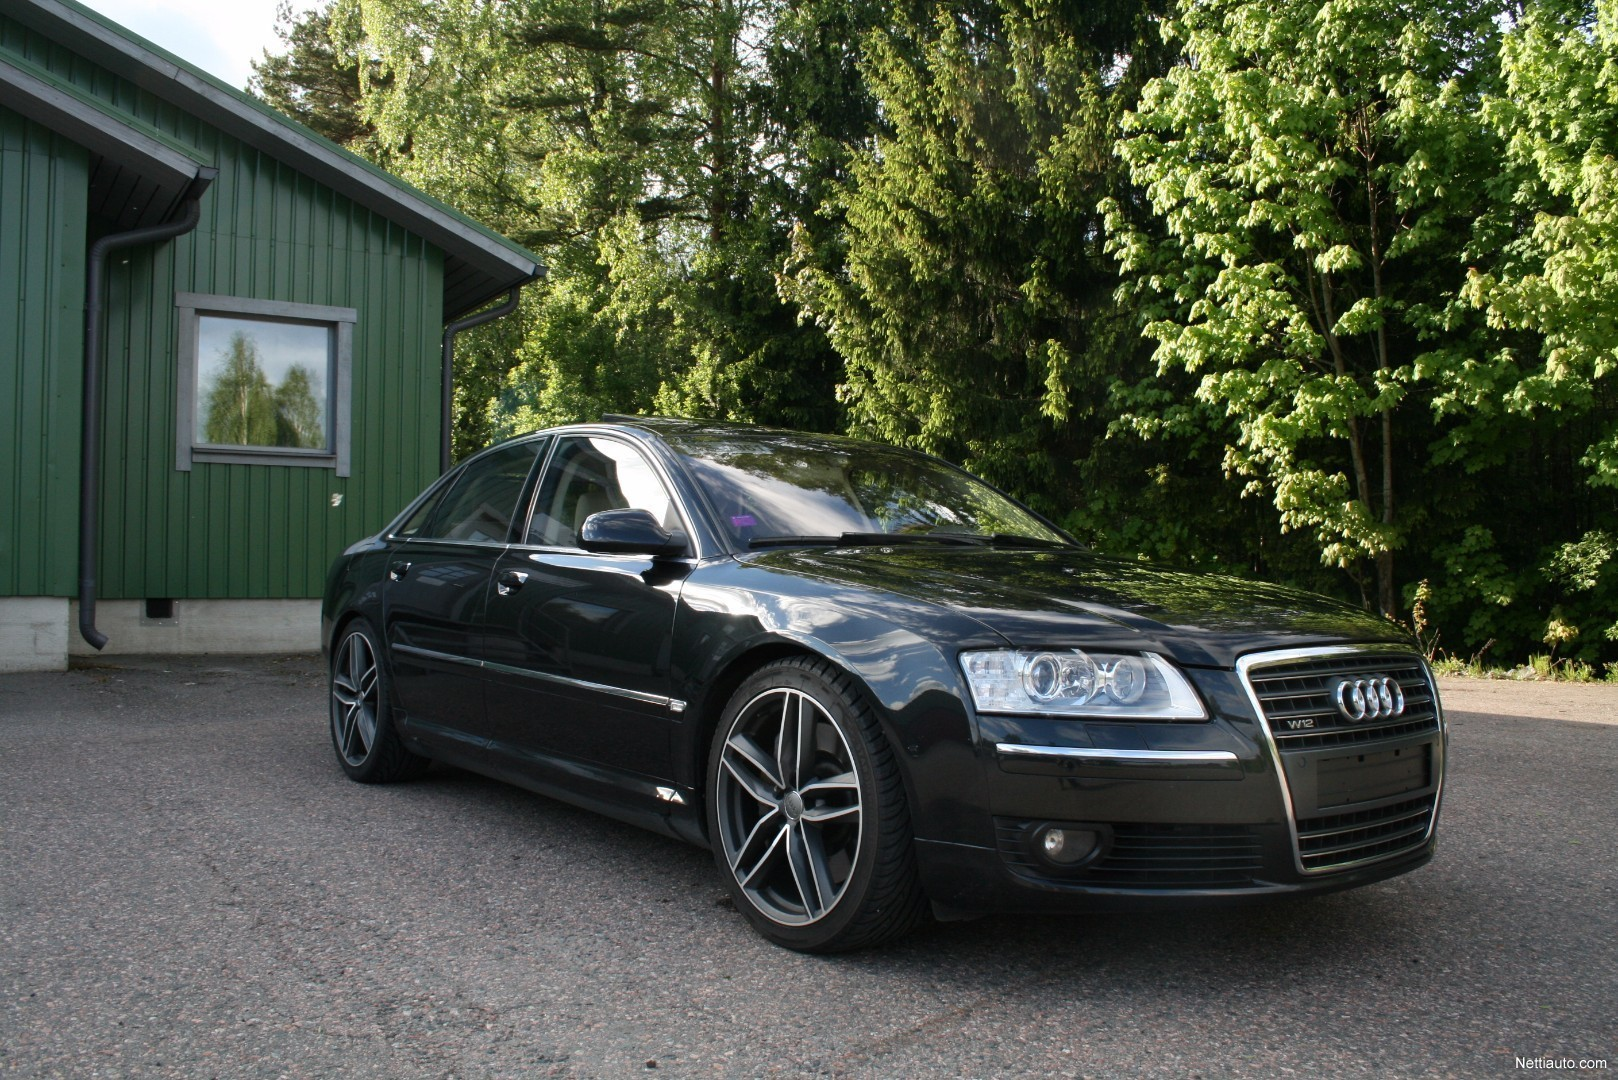 Enlarge image. Audi A8